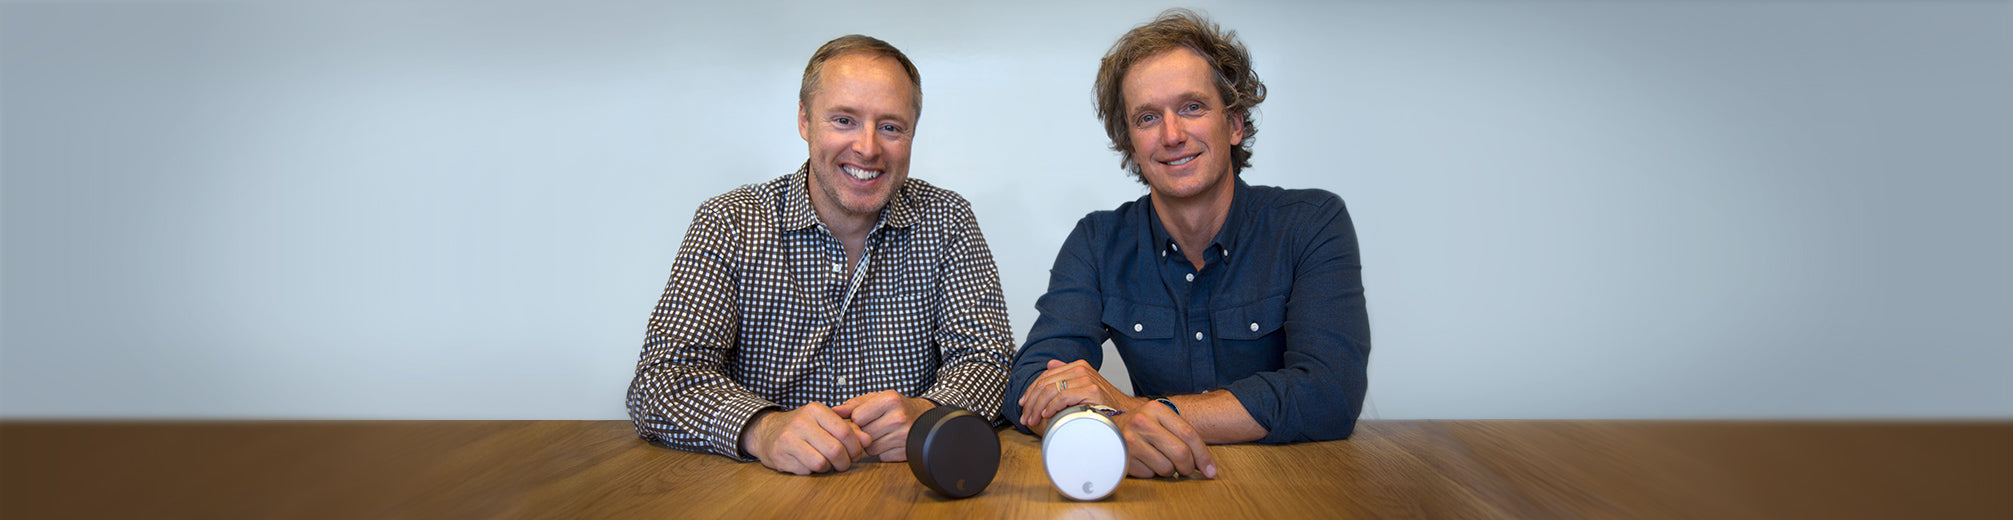 August Home Secures $25M in Series C Funding